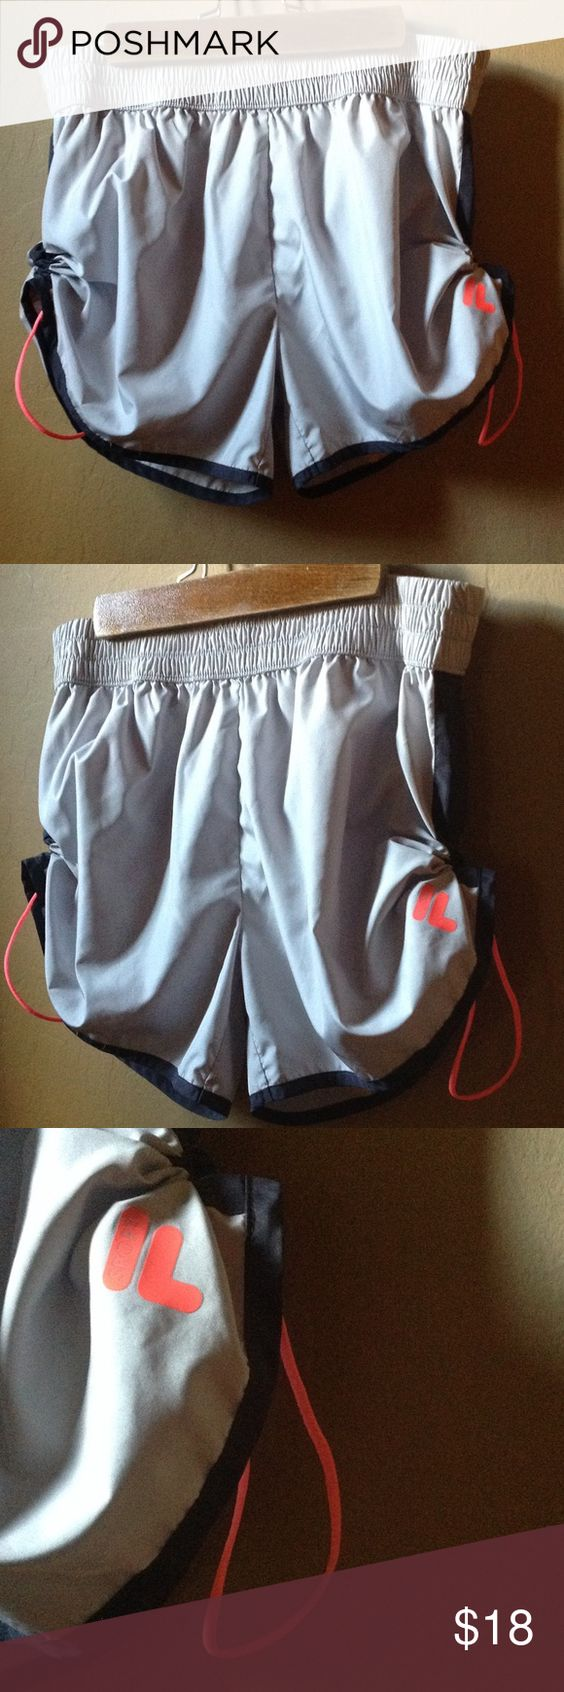 FILA Sport Activewear Shorts Light gray with hot pink trim. These shorts are super cool! They have a bungee drawstring on each side of the shorts that can be adjusted. You can scrunch them up to be very high or let them go all the way down for a regular short look. They have built in undergarments. Fila Shorts